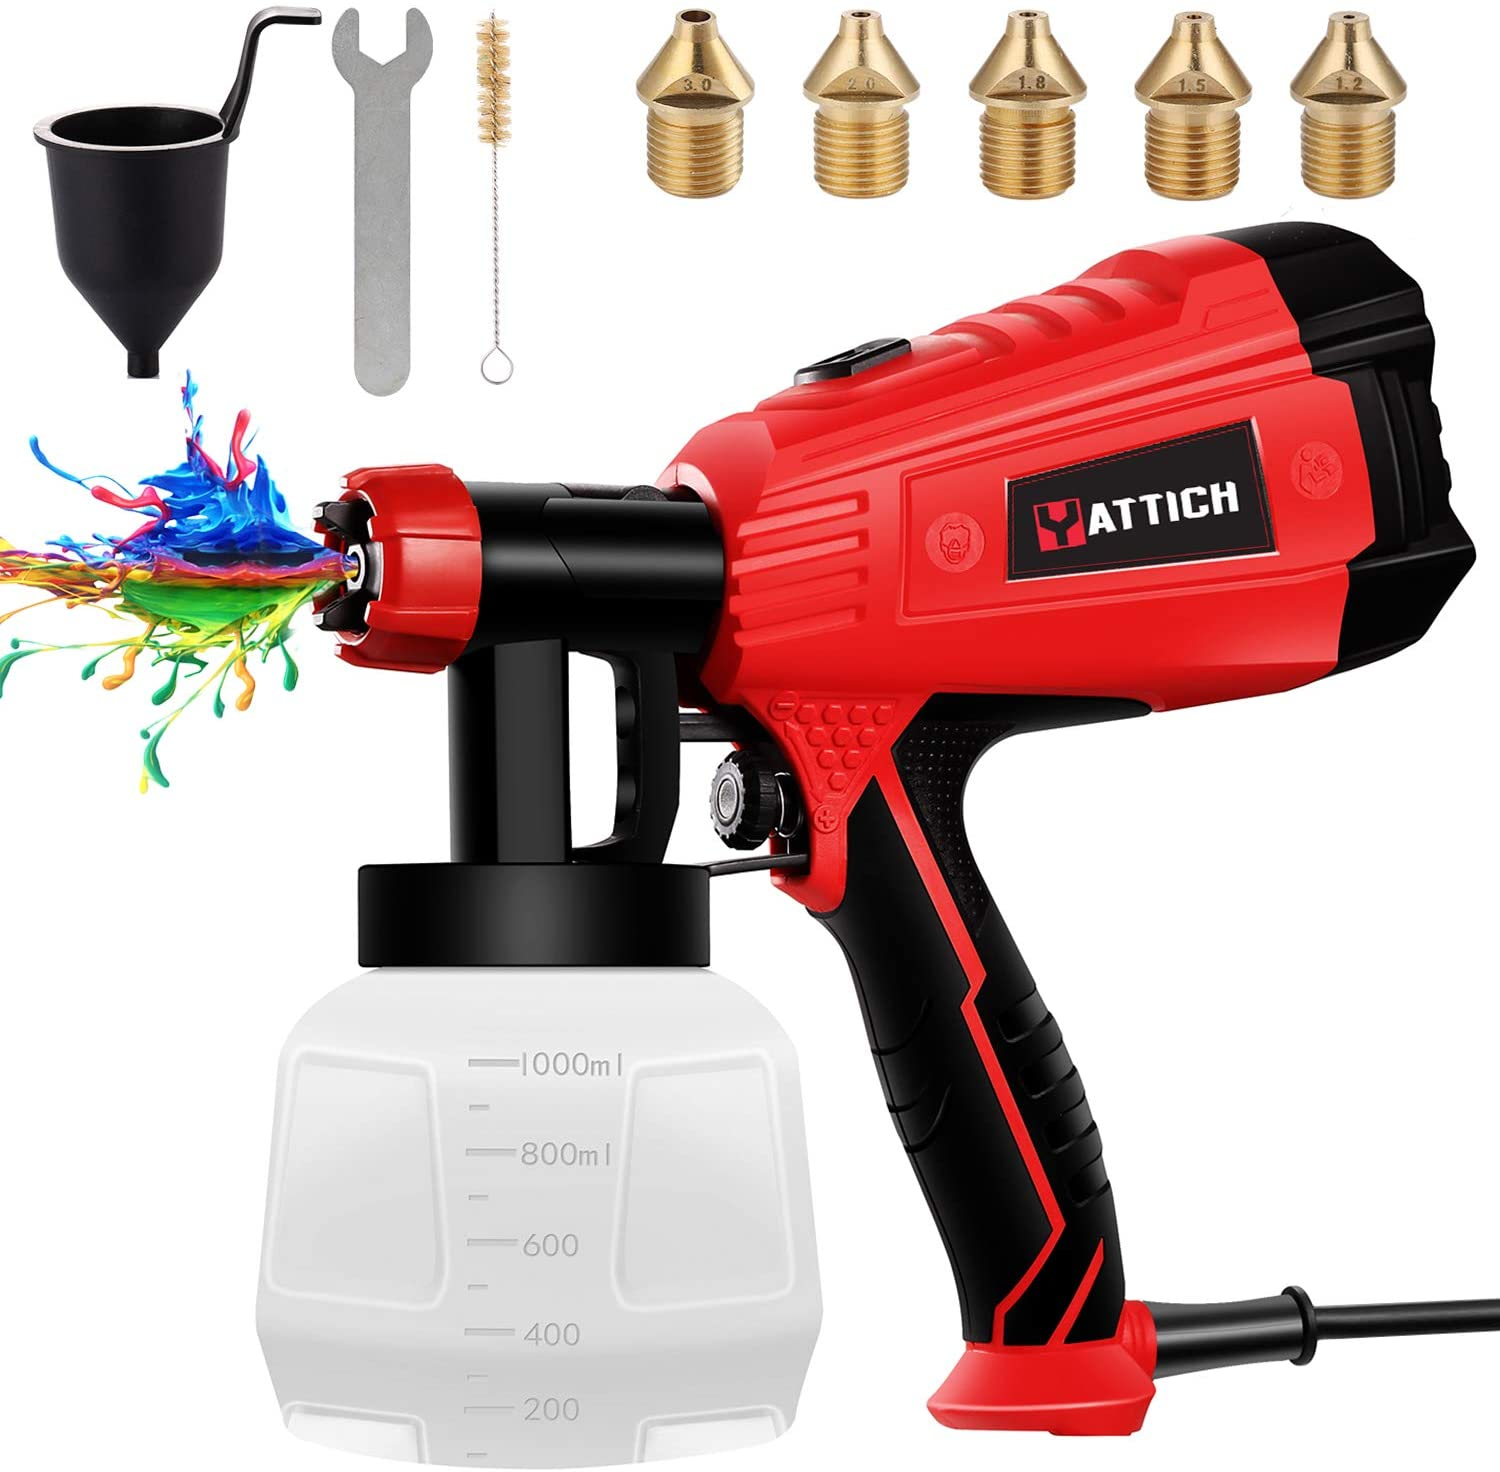 YATTICH 5 Copper Nozzle Paint Sprayer